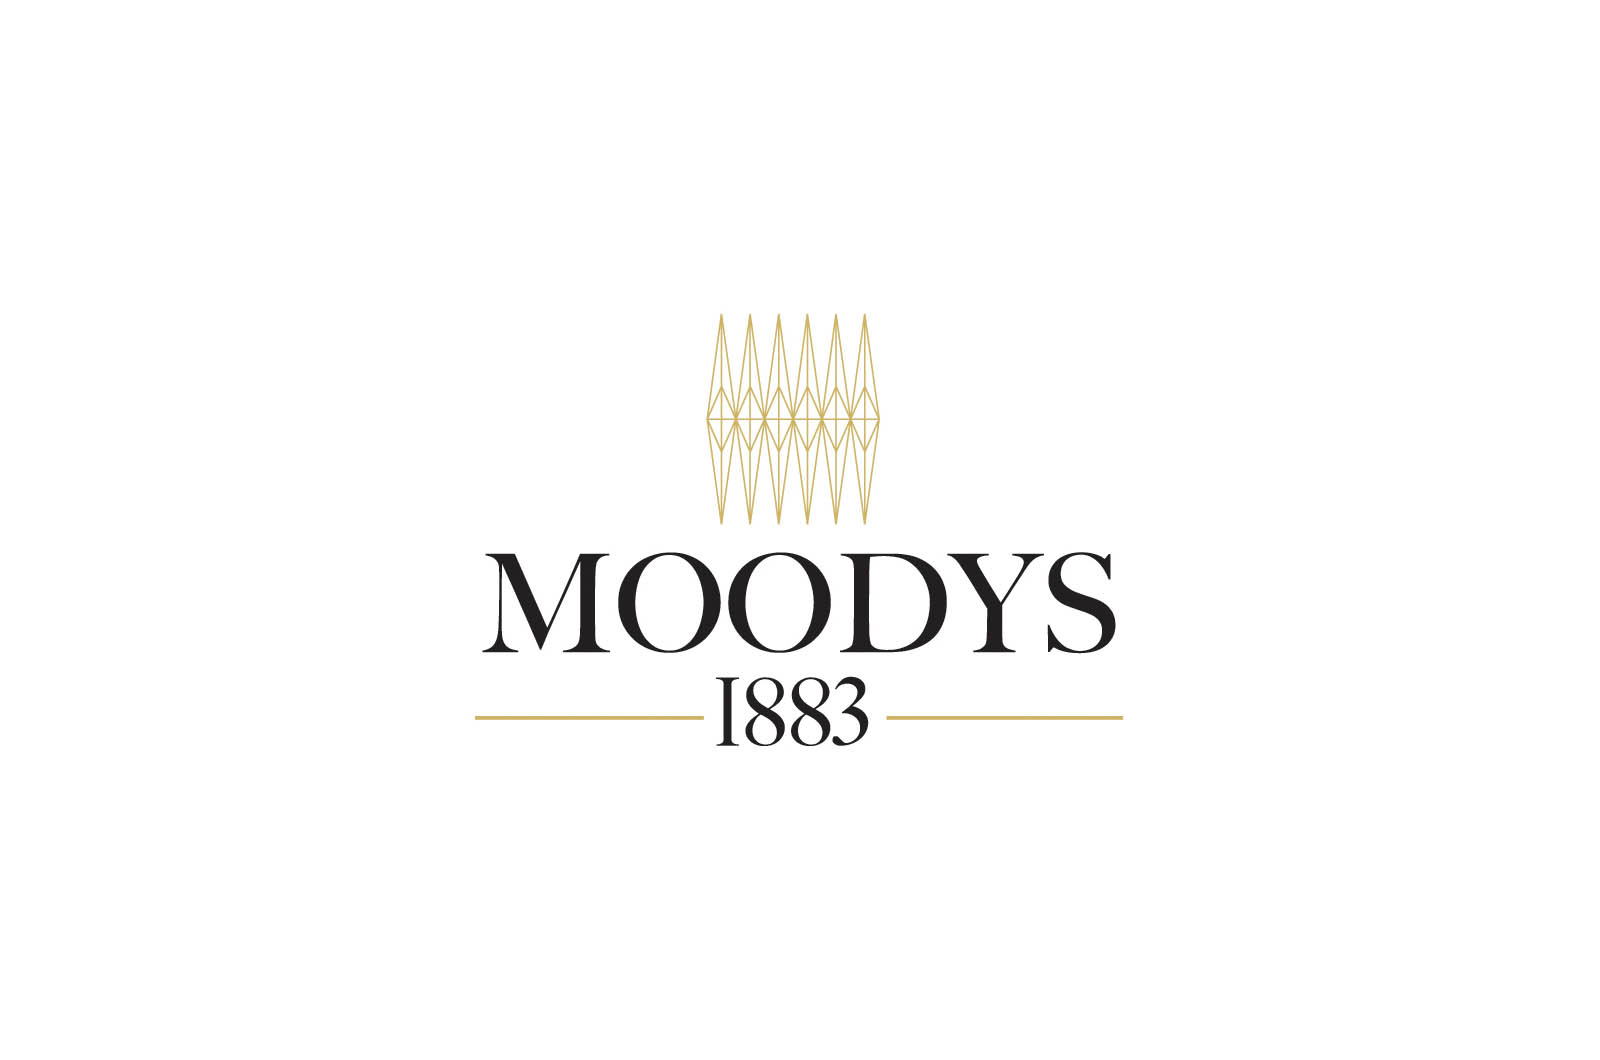 GSD® are proud to have worked alongside CH Moody & Son for 20 years – Elegance and Style by Tradition